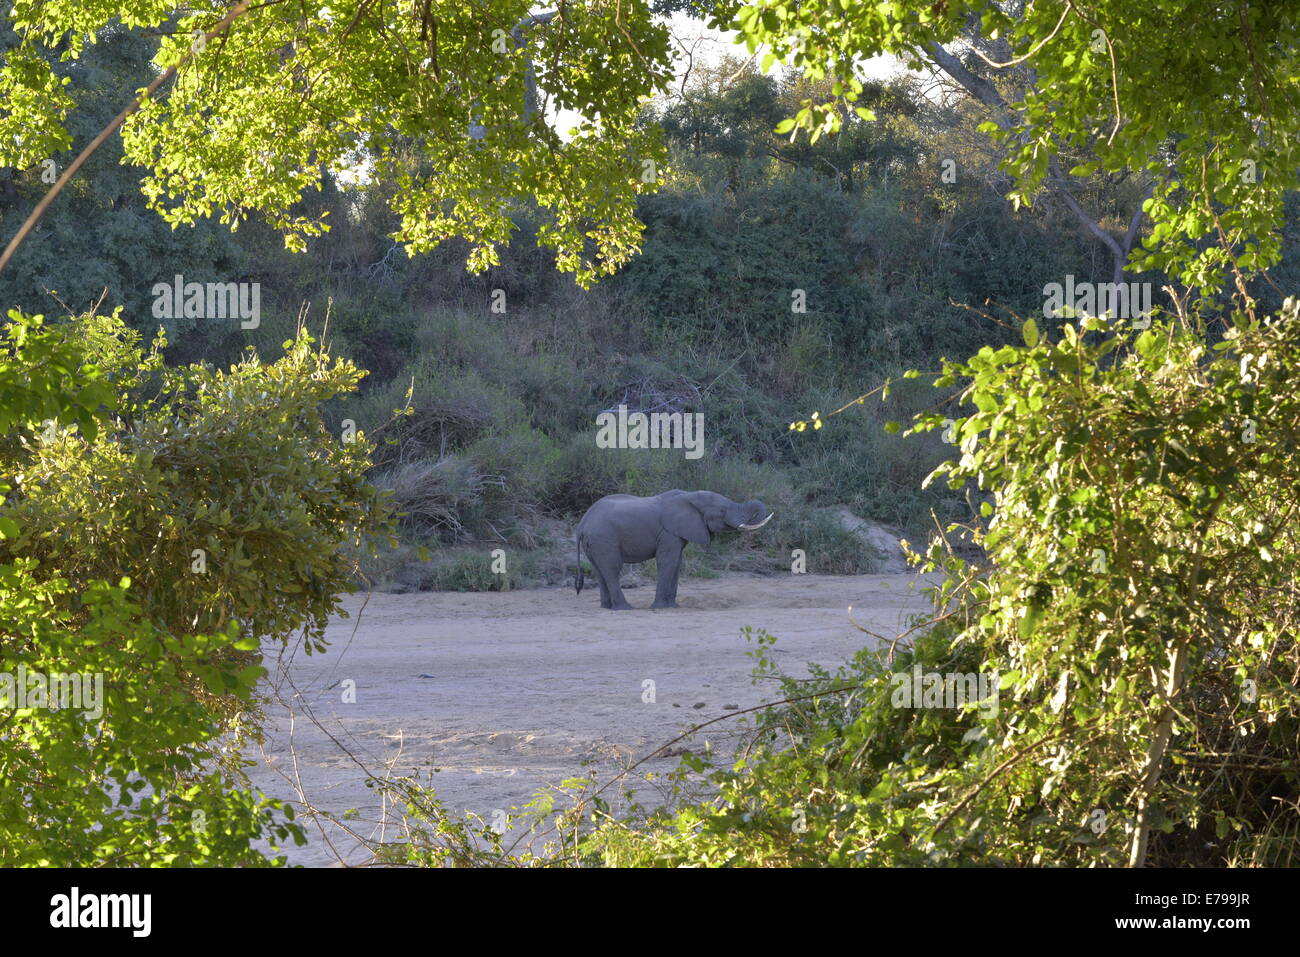 Elephant bull digging for water in sandy river bed, Kruger National Park, South Africa - Stock Image